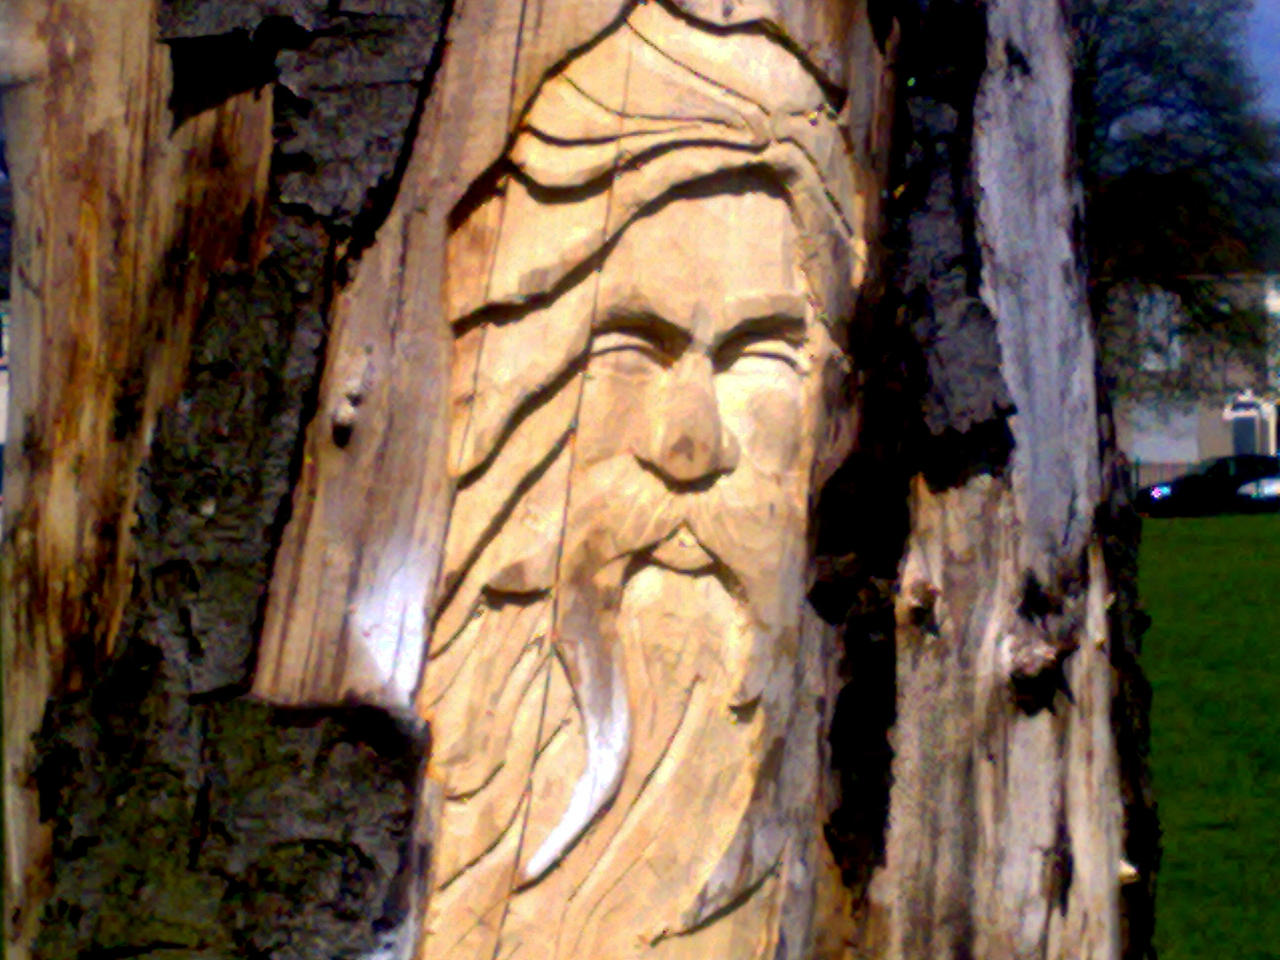 Tree Spirit Wood Carving by Mudchild